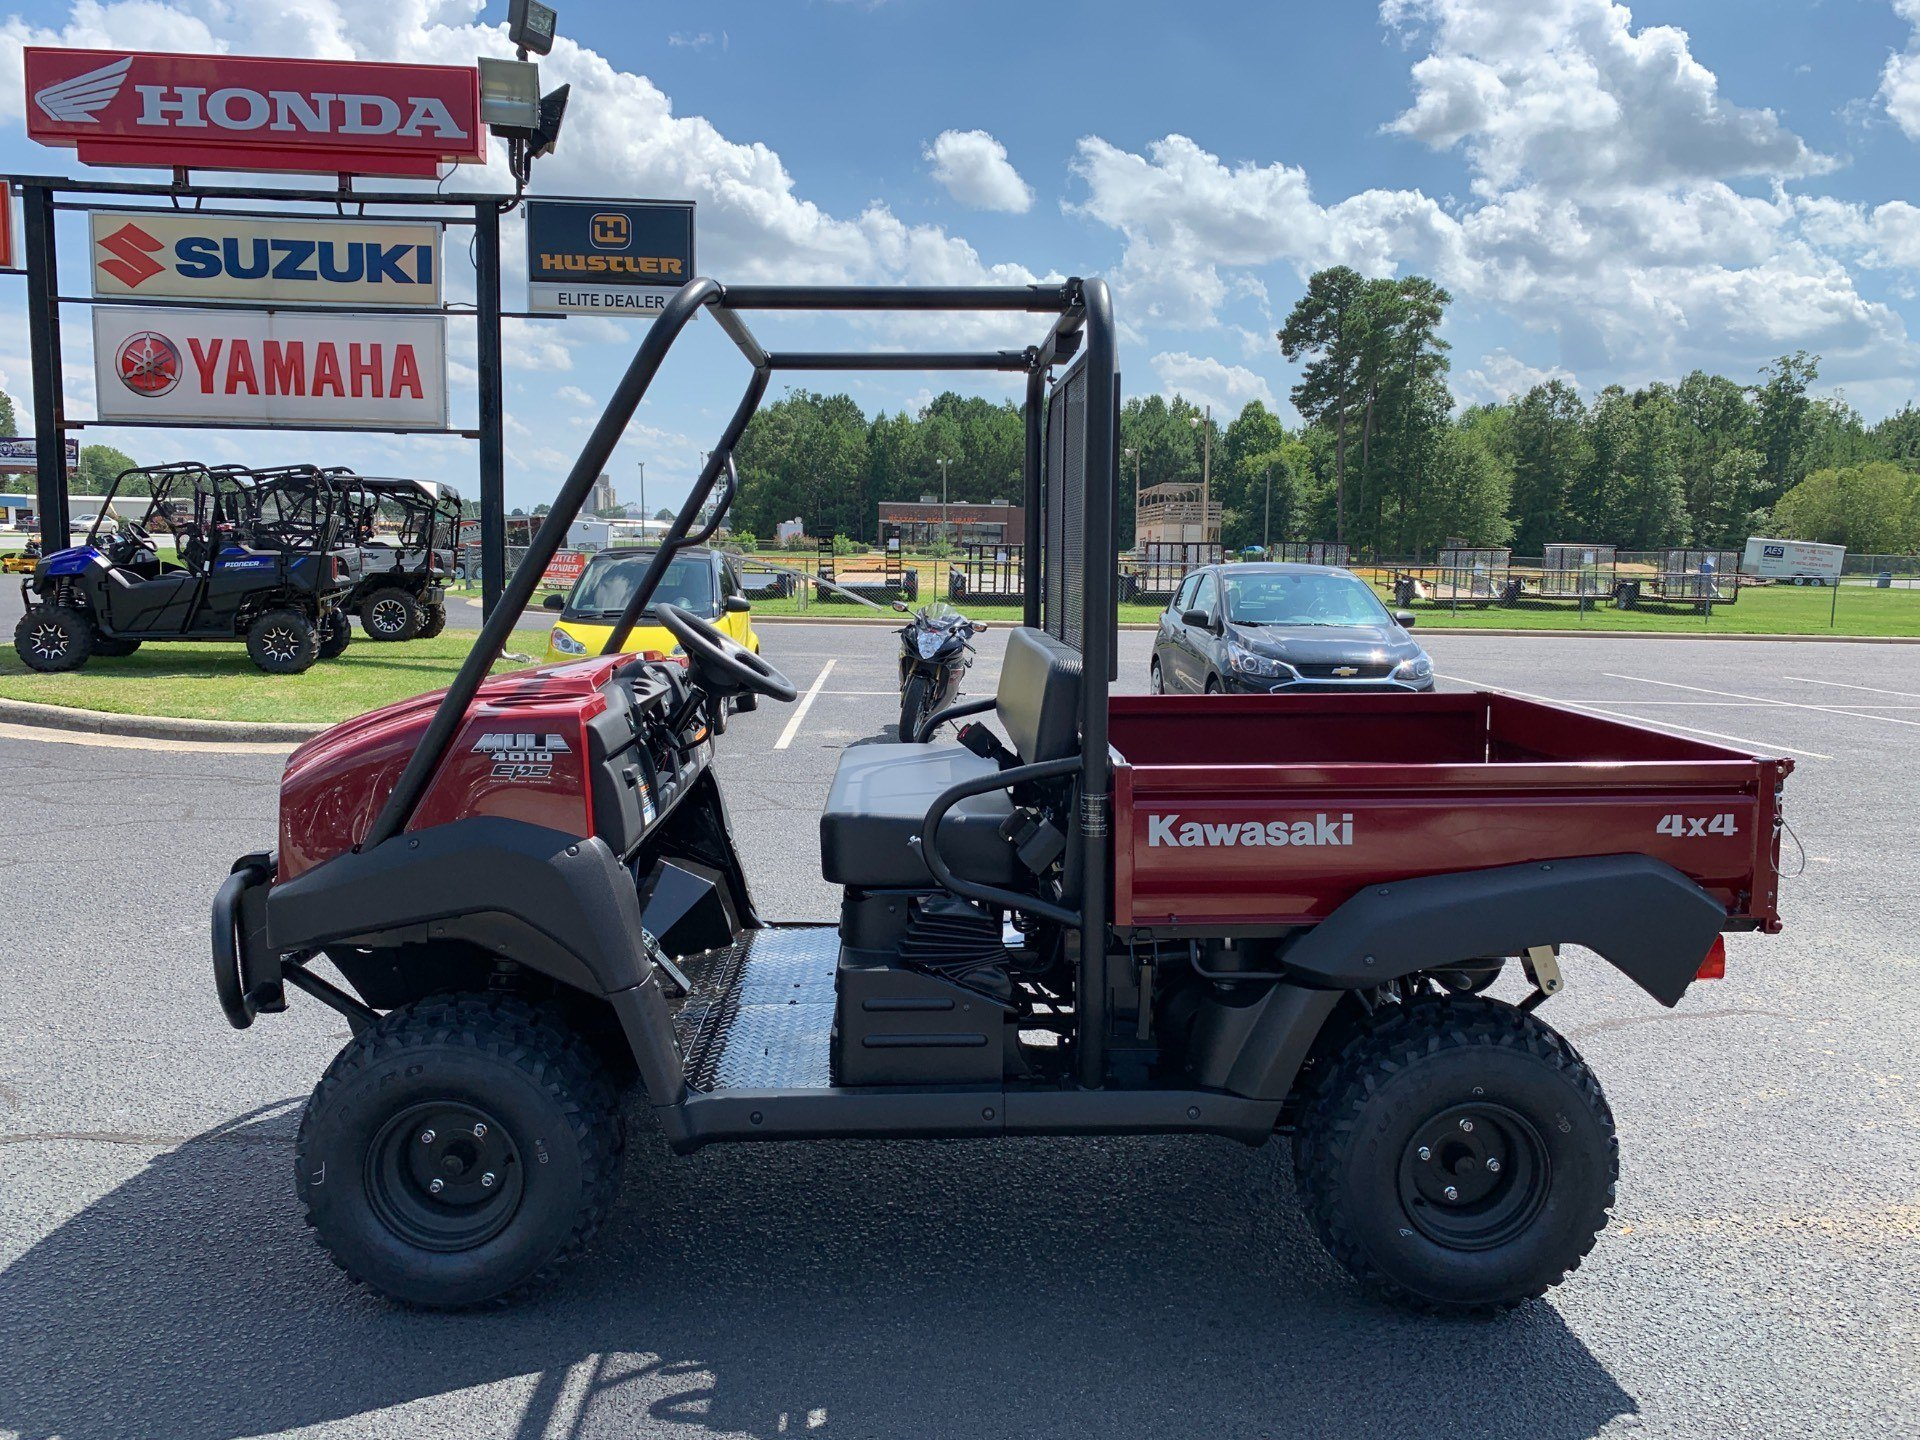 2020 Kawasaki Mule 4010 4x4 in Greenville, North Carolina - Photo 7